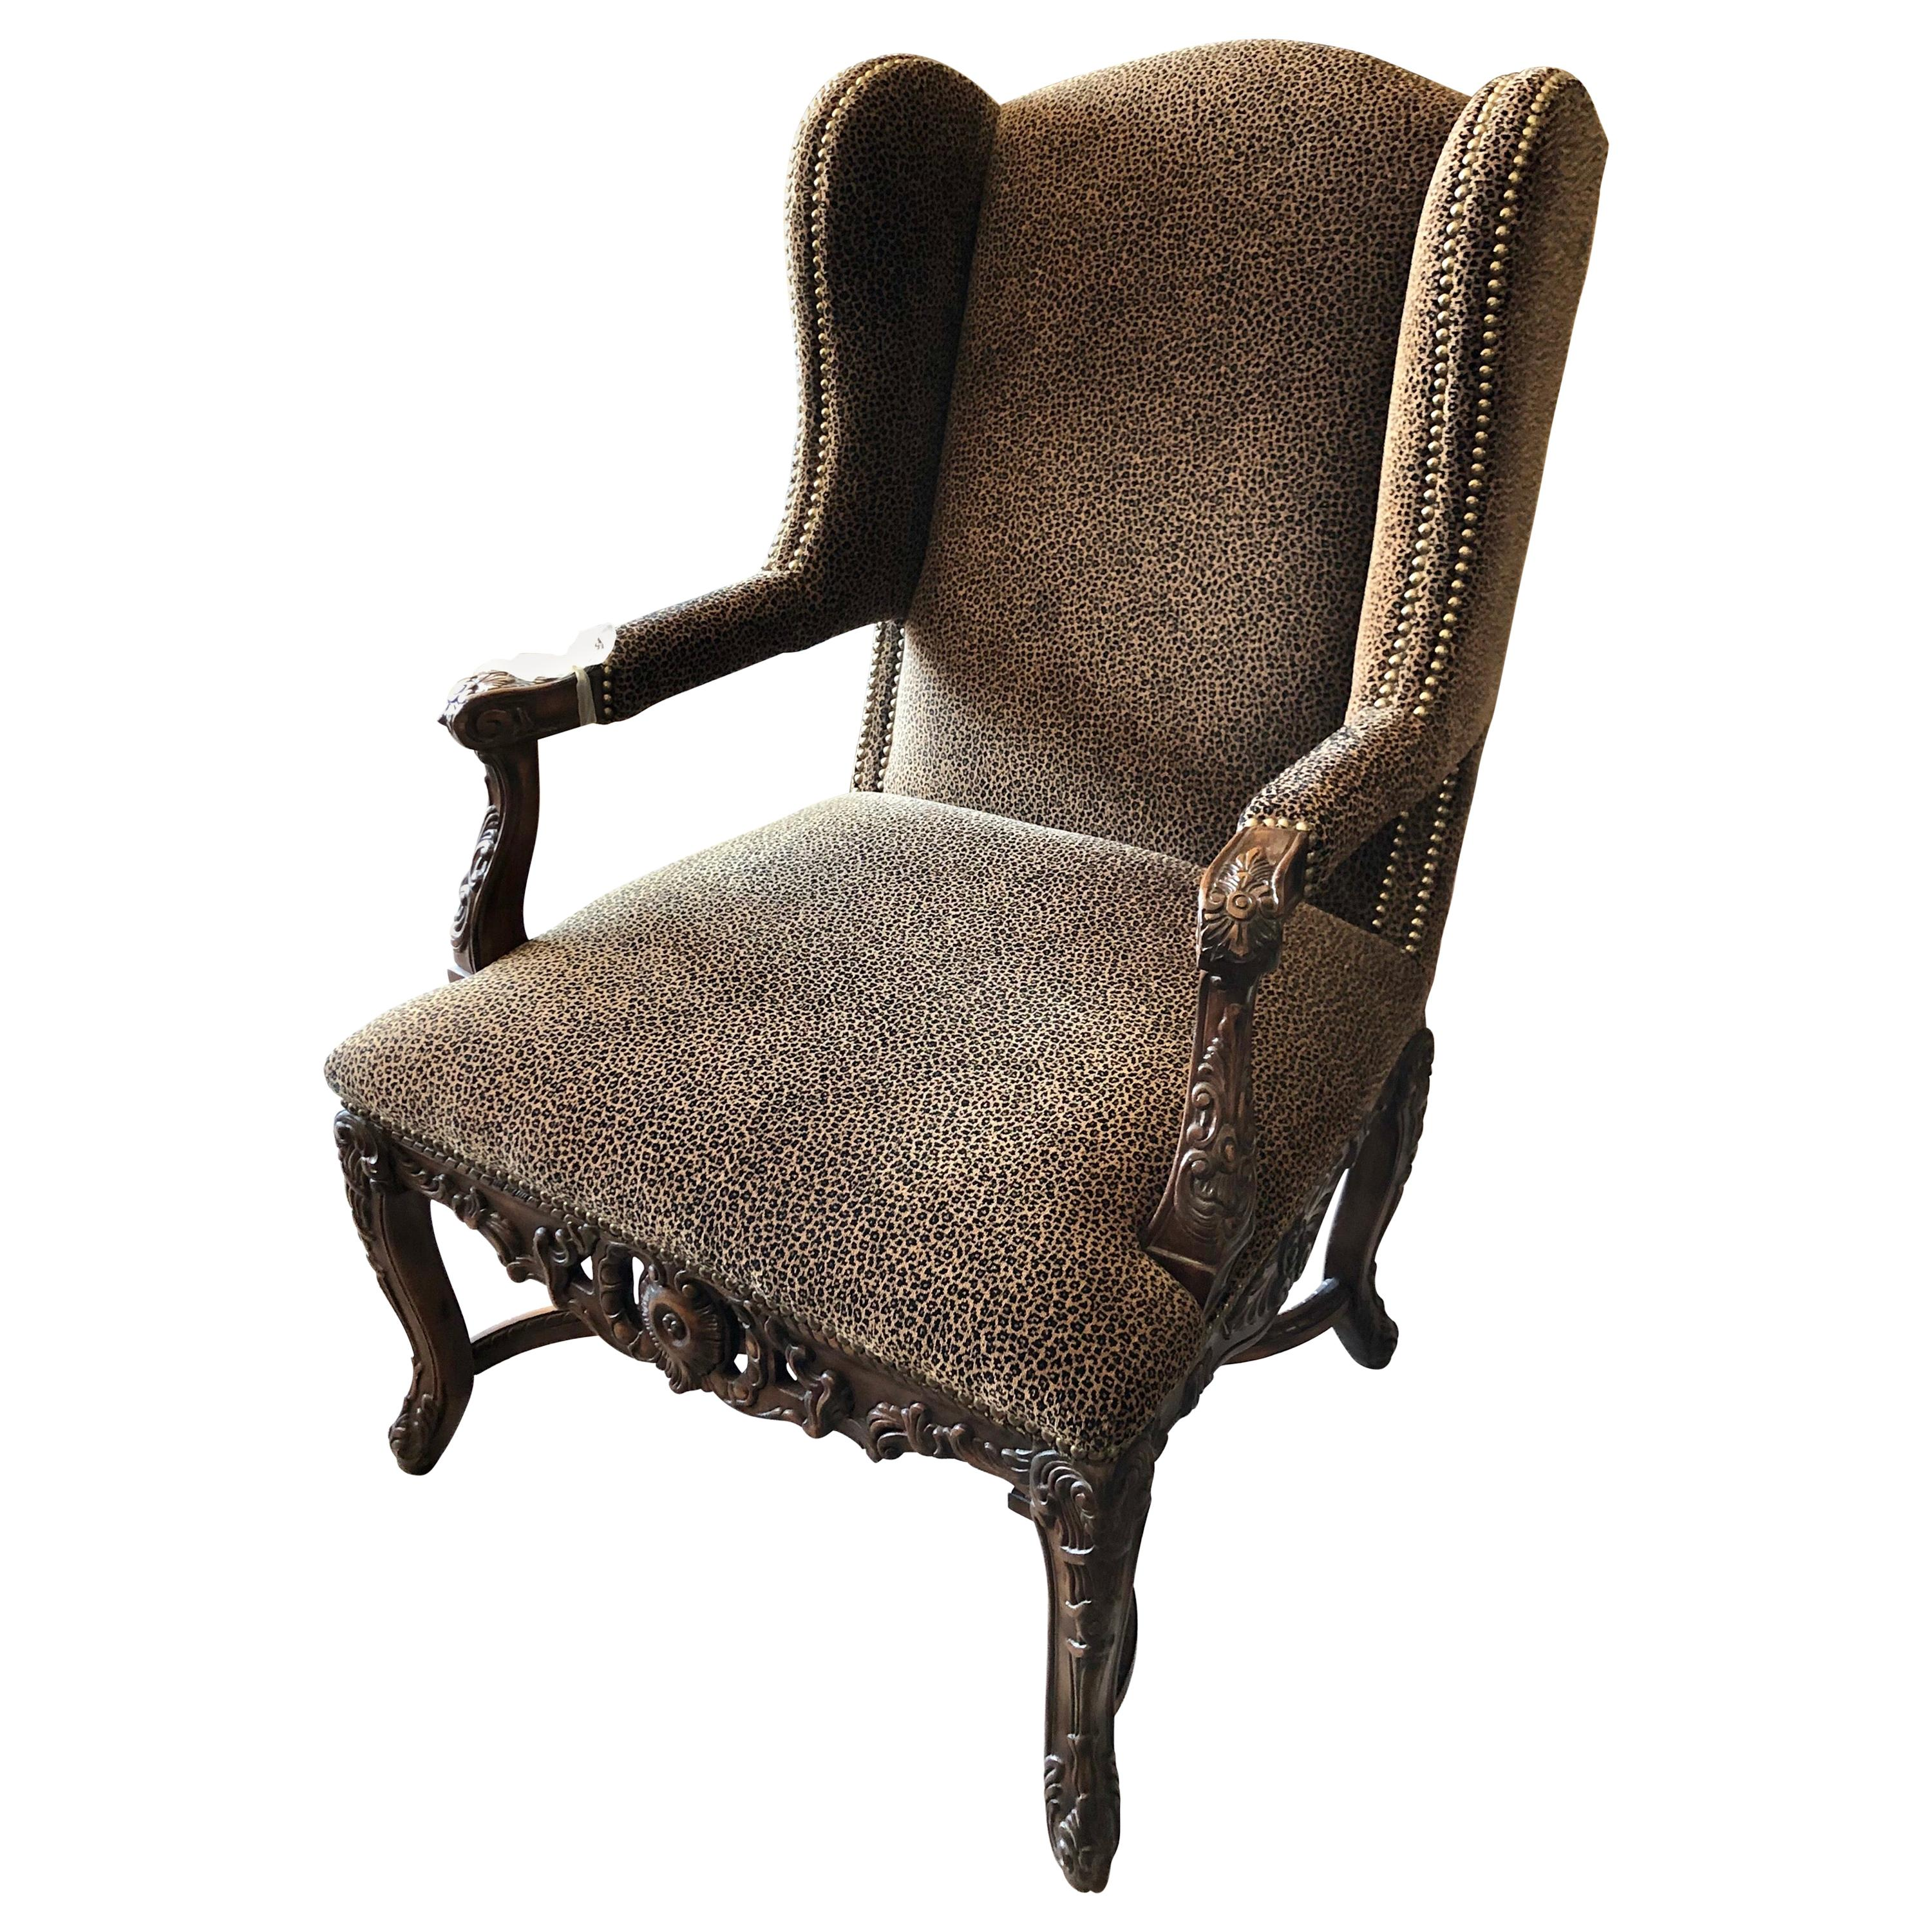 Late 19th Century Louis XVI Wingback Chair With Leopard Upholstery